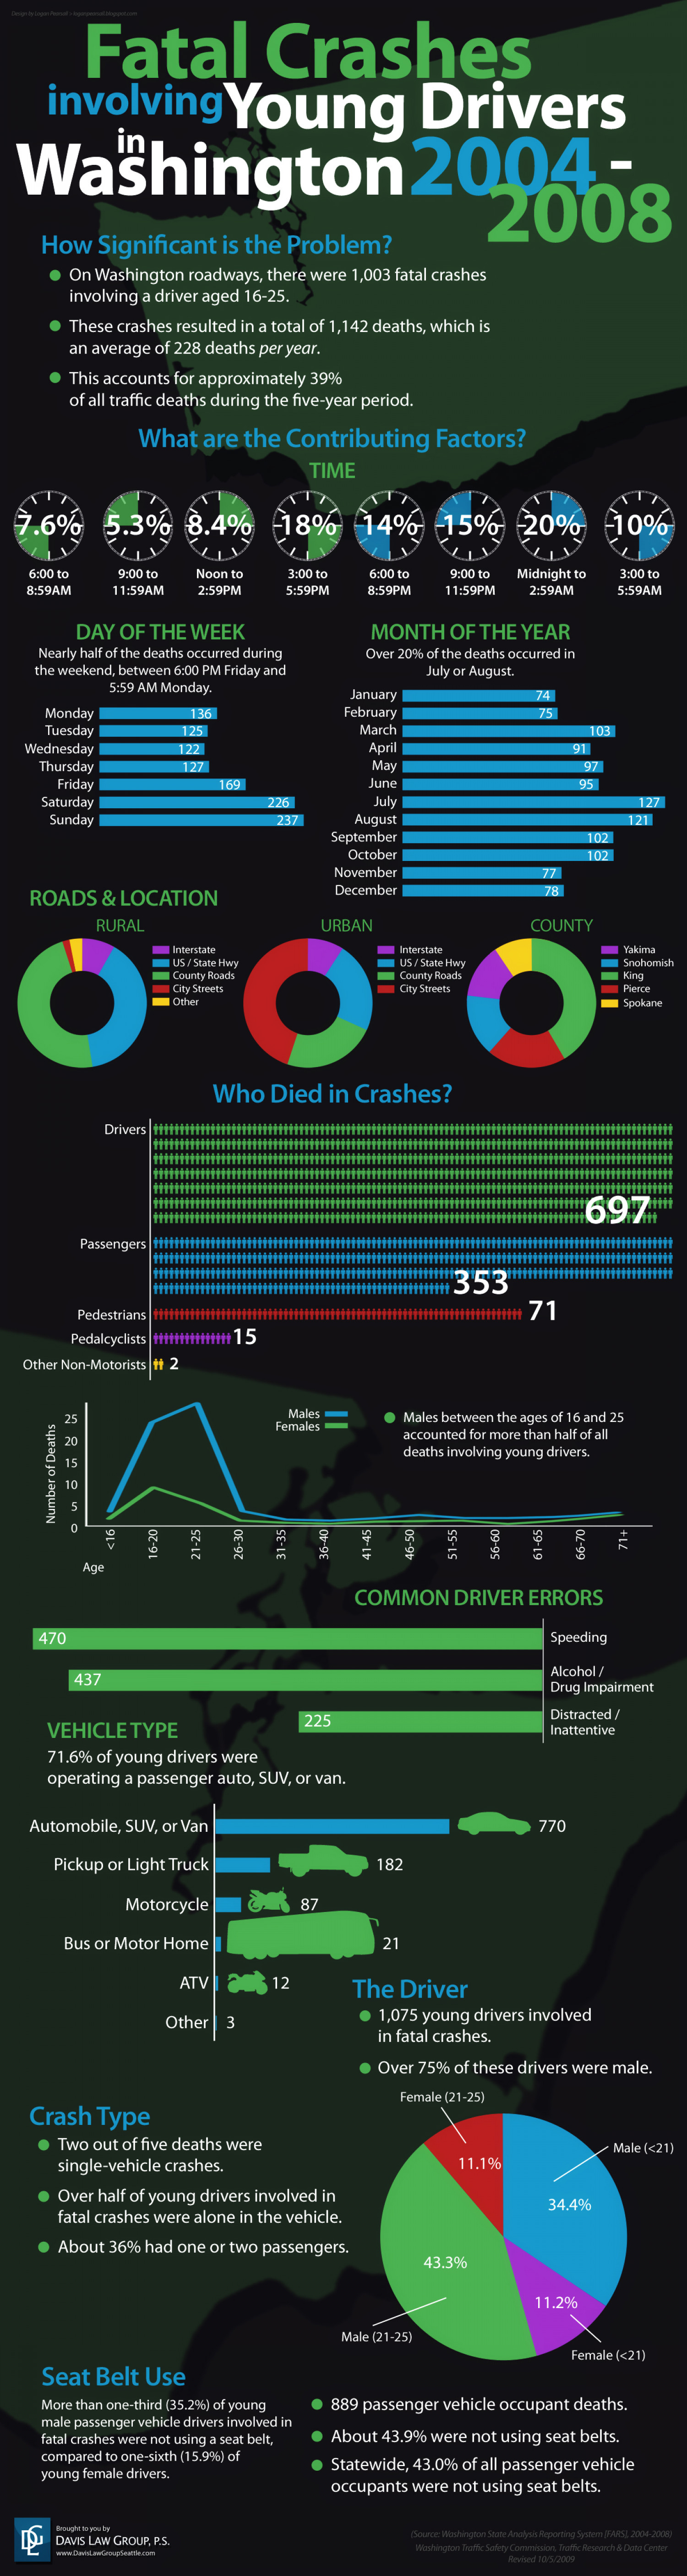 Fatal Crashes Involving Young Drivers in Washington 2004-2008 Infographic